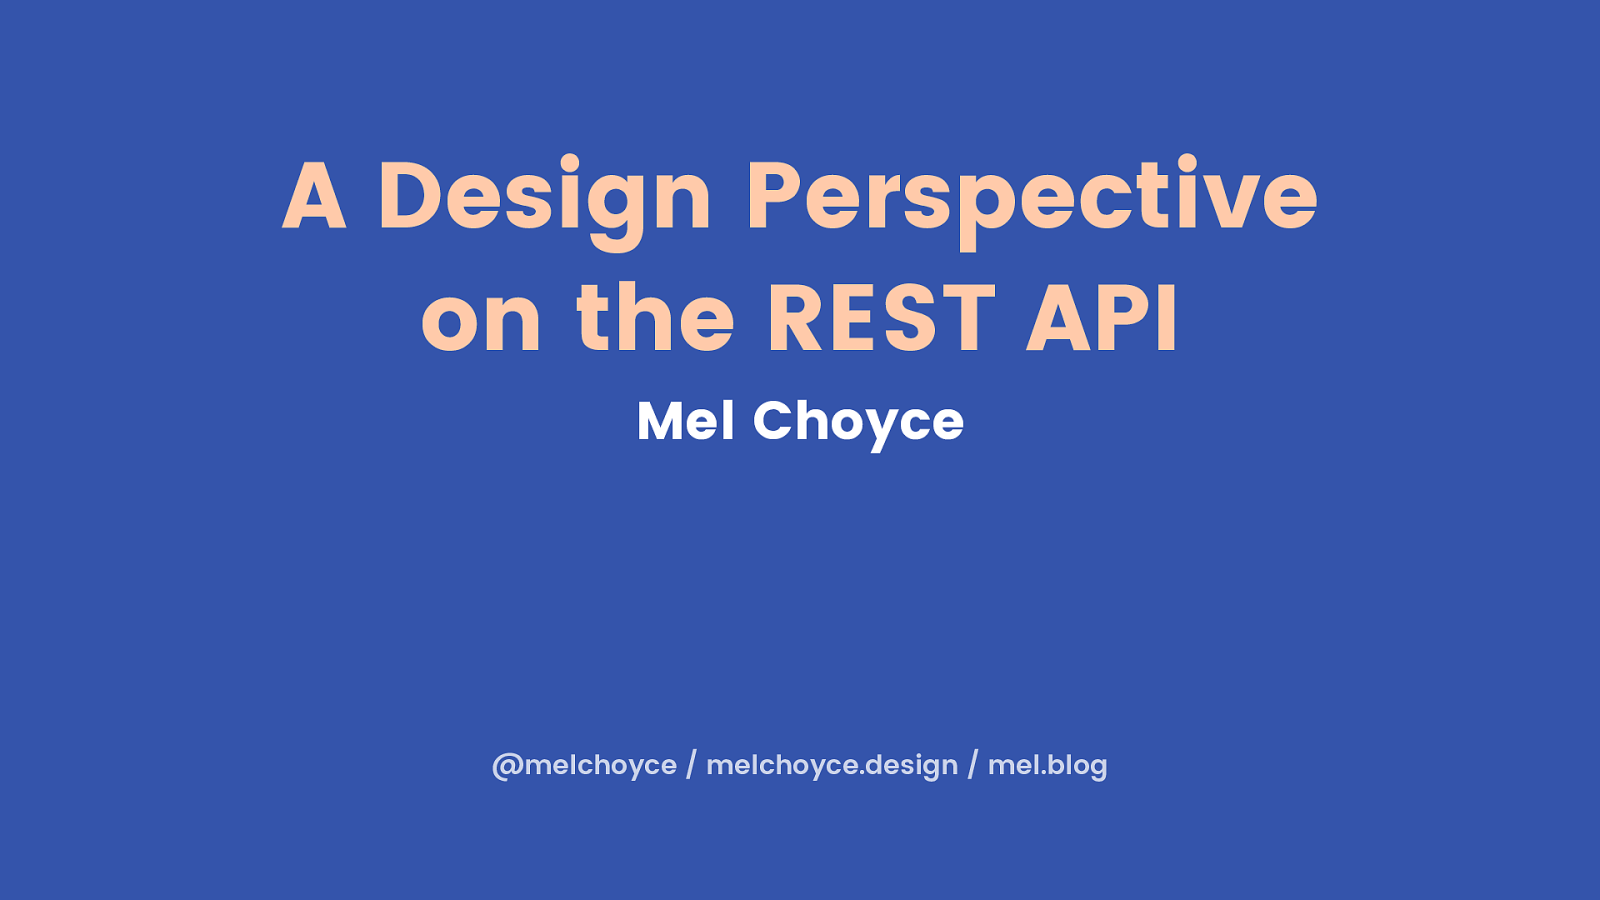 A Design Perspective on the WordPress REST API